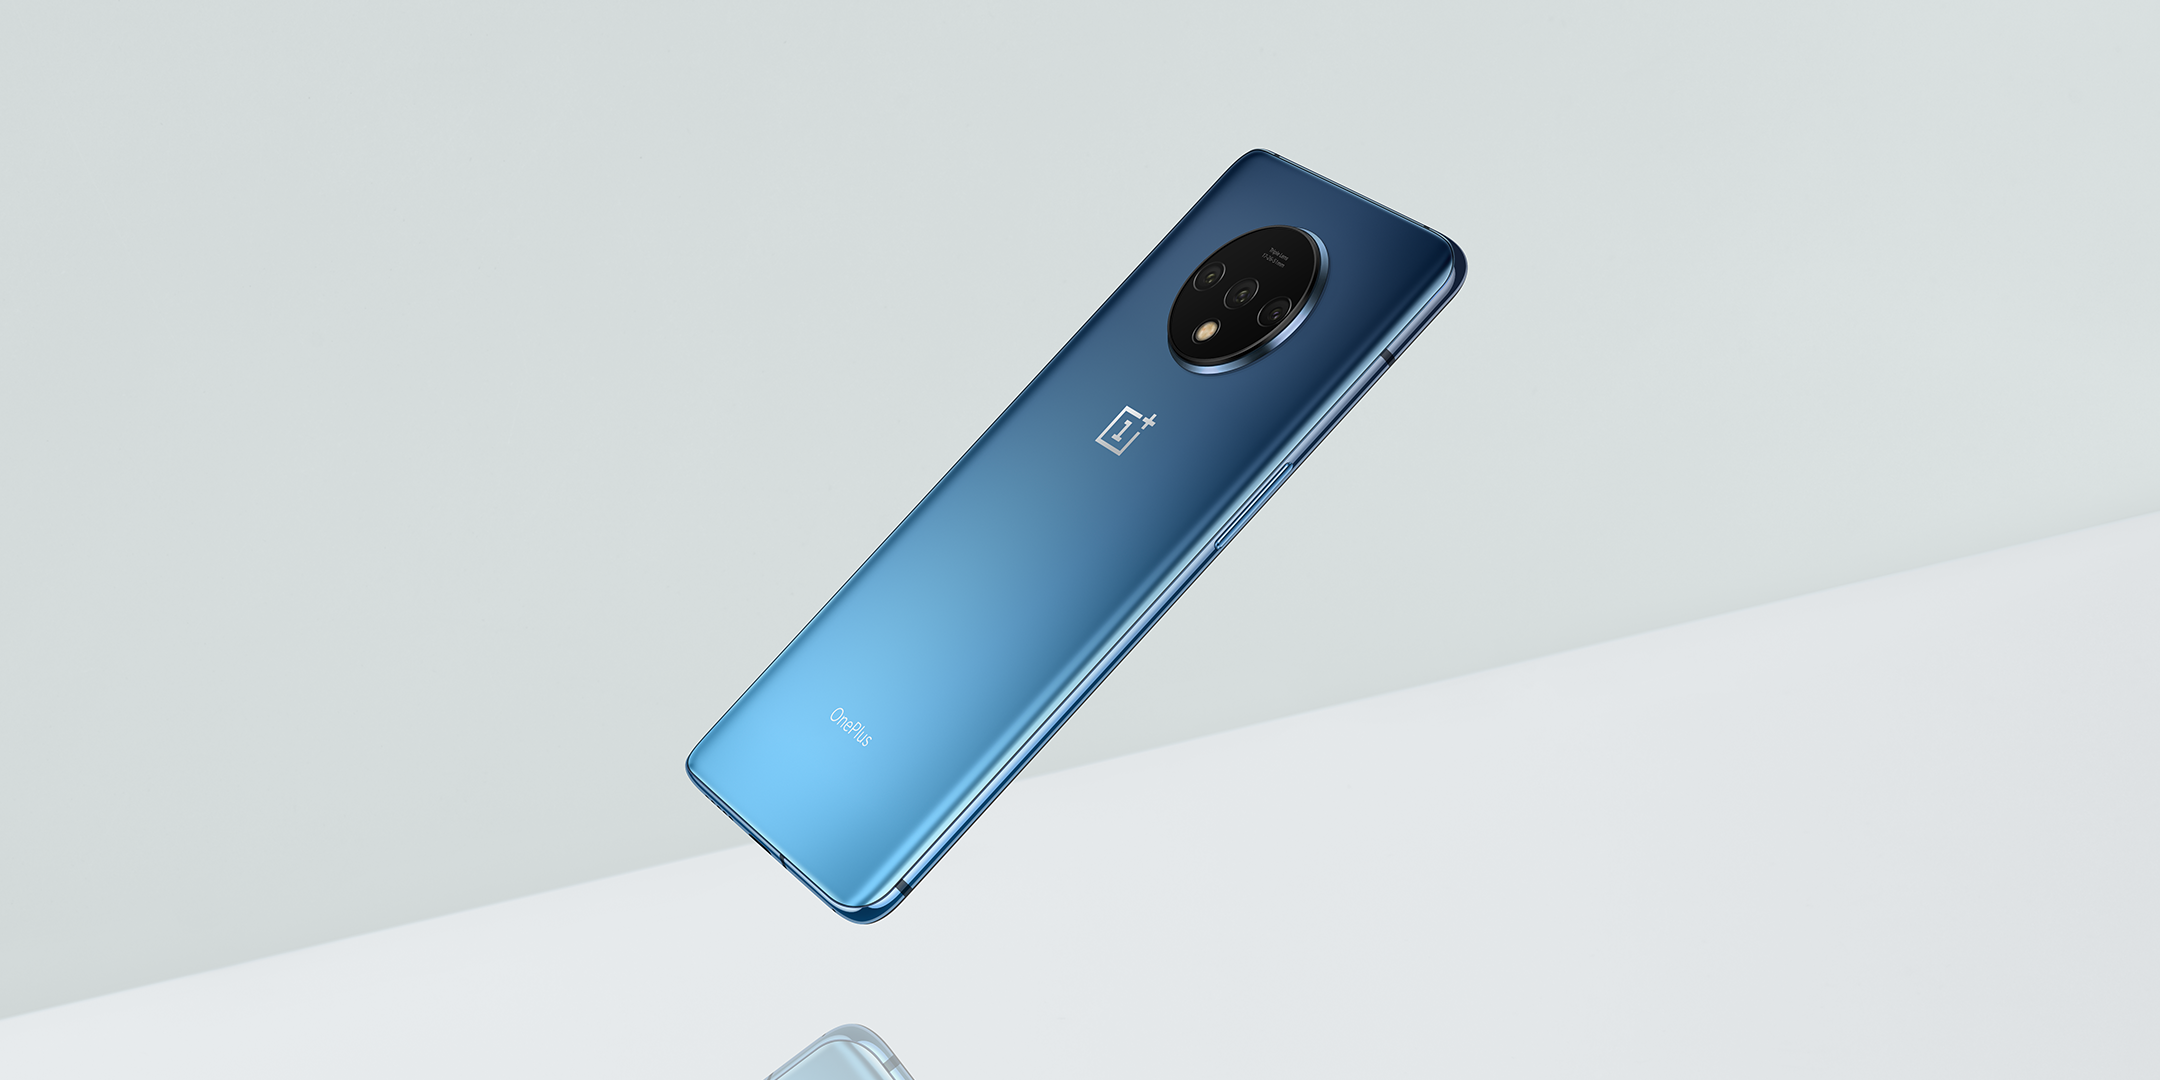 Here's the OnePlus 7T in official images and some new camera specs